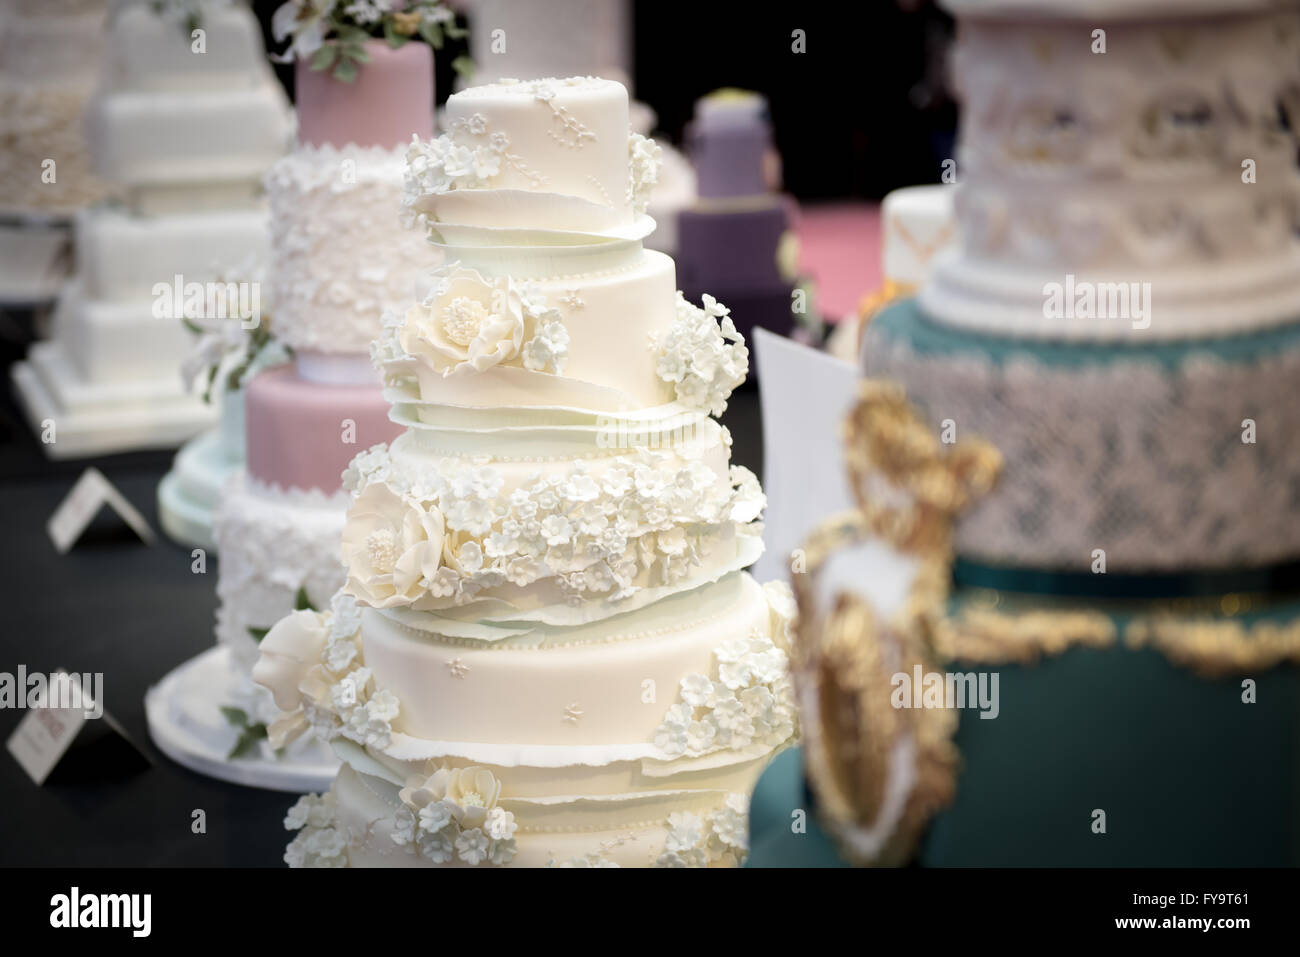 Decorative Wedding Cakes With Edible Flowers At Cake International The Sugarcraft Decorating And Baking Show In London